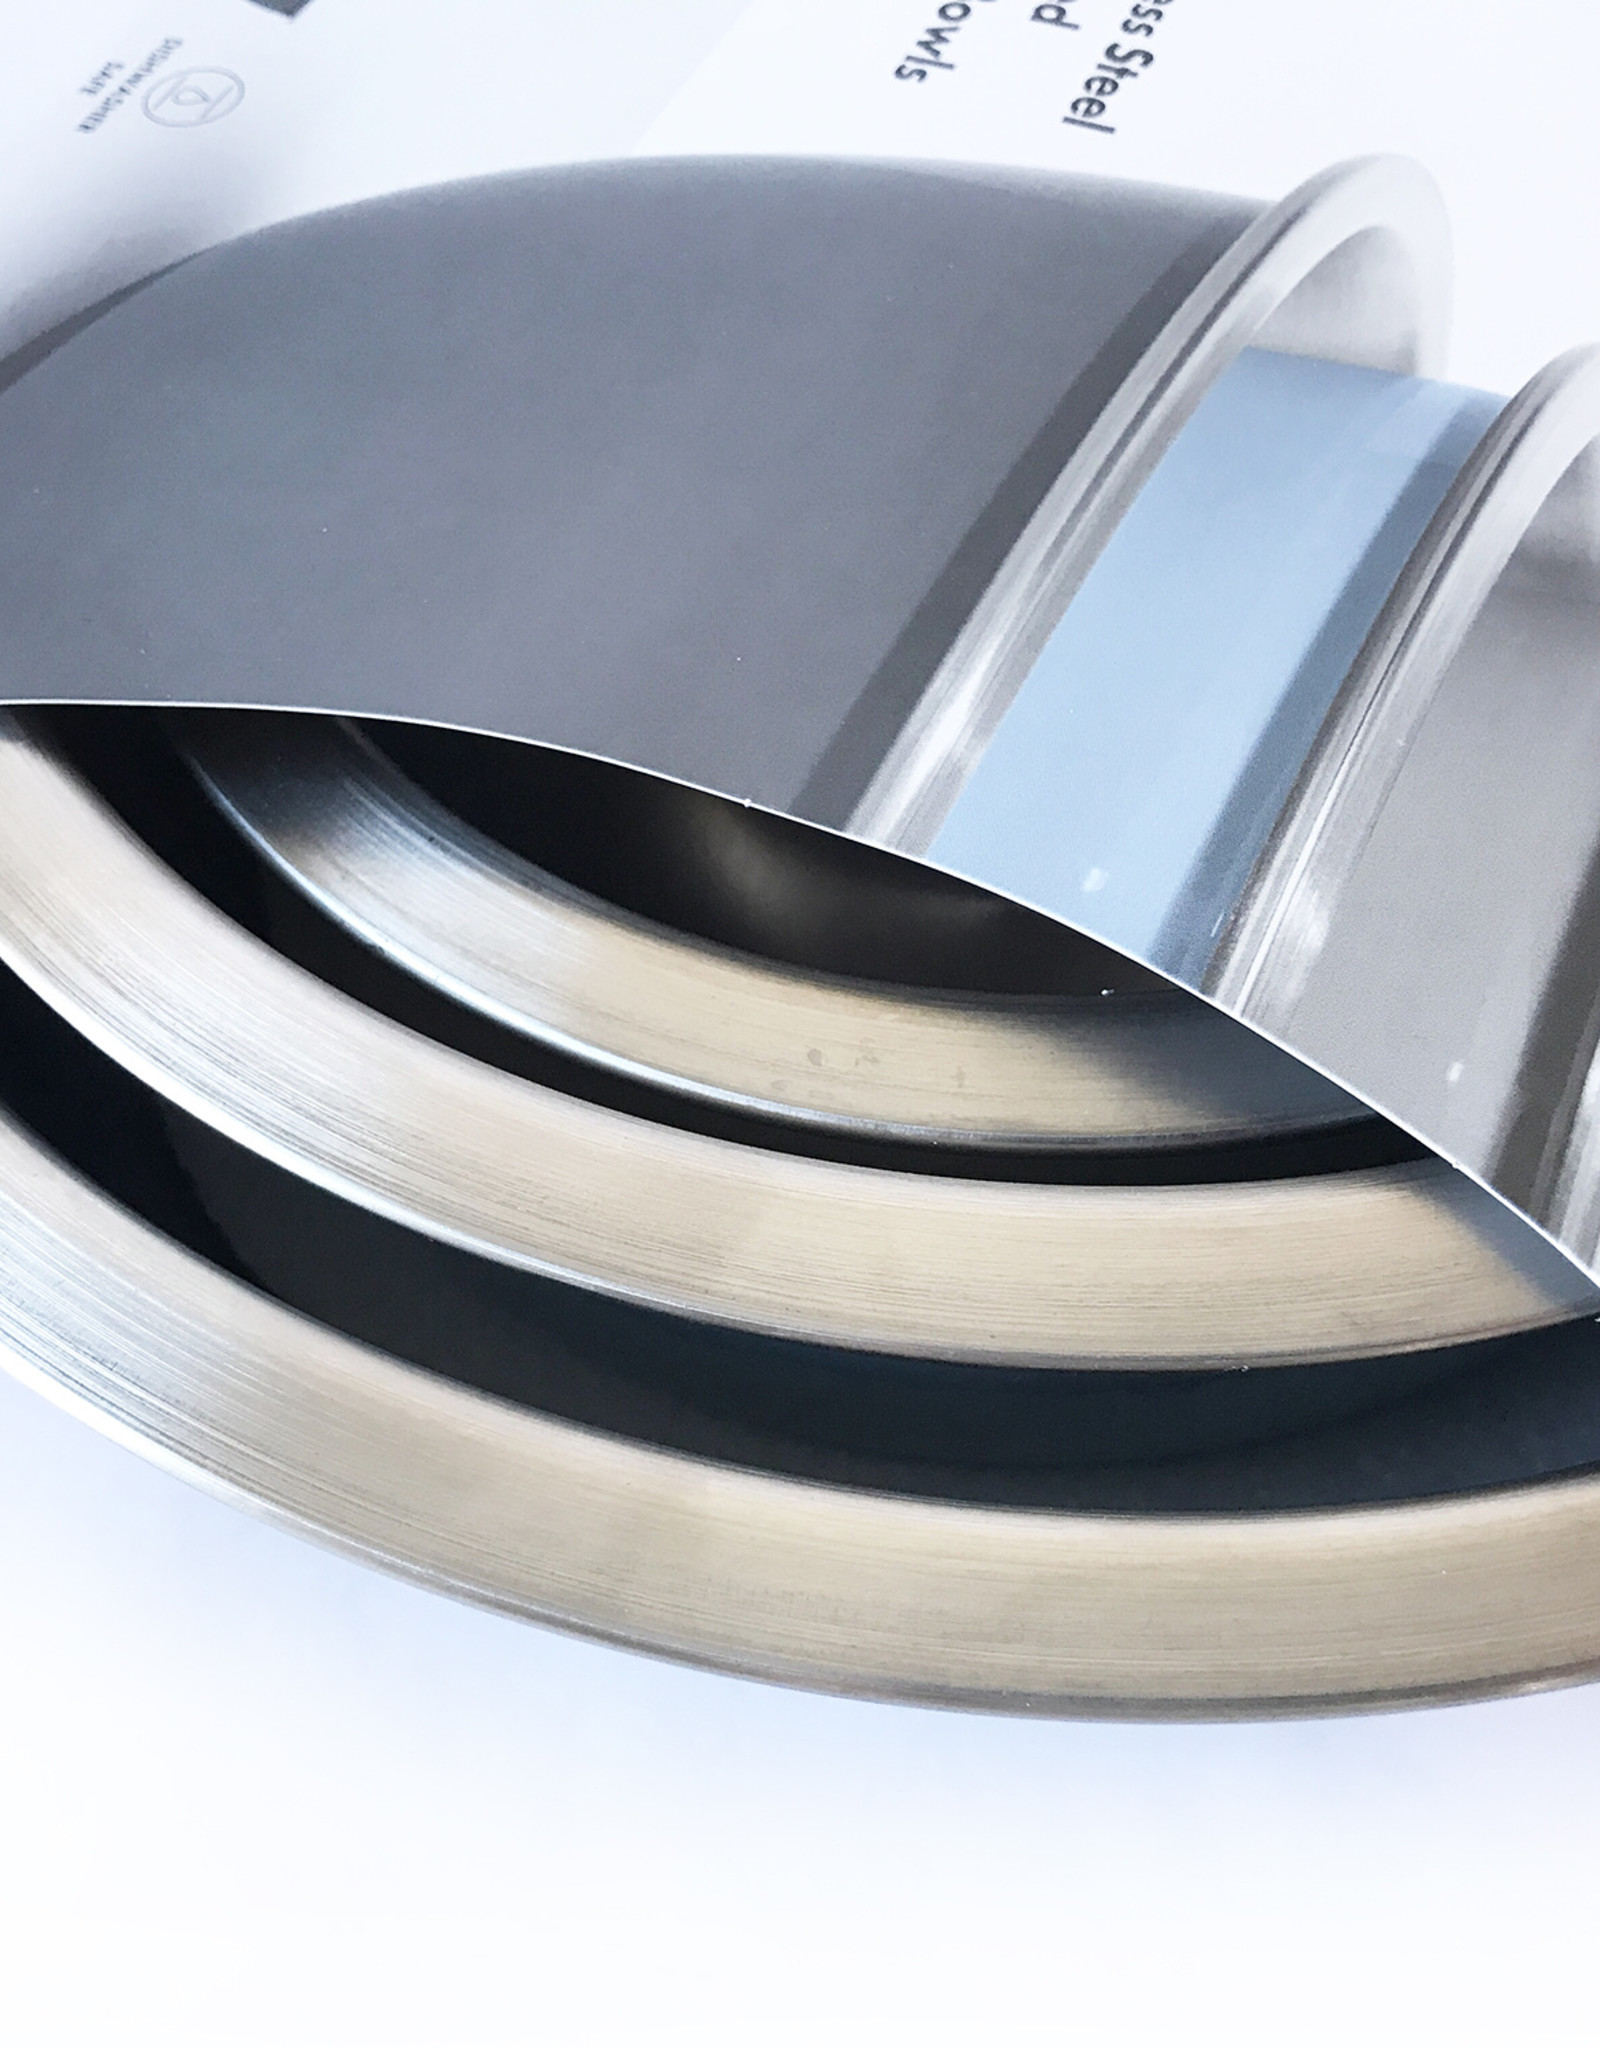 OXO OXO Good Grips Stainless Steel Insulated Mixing Bowls